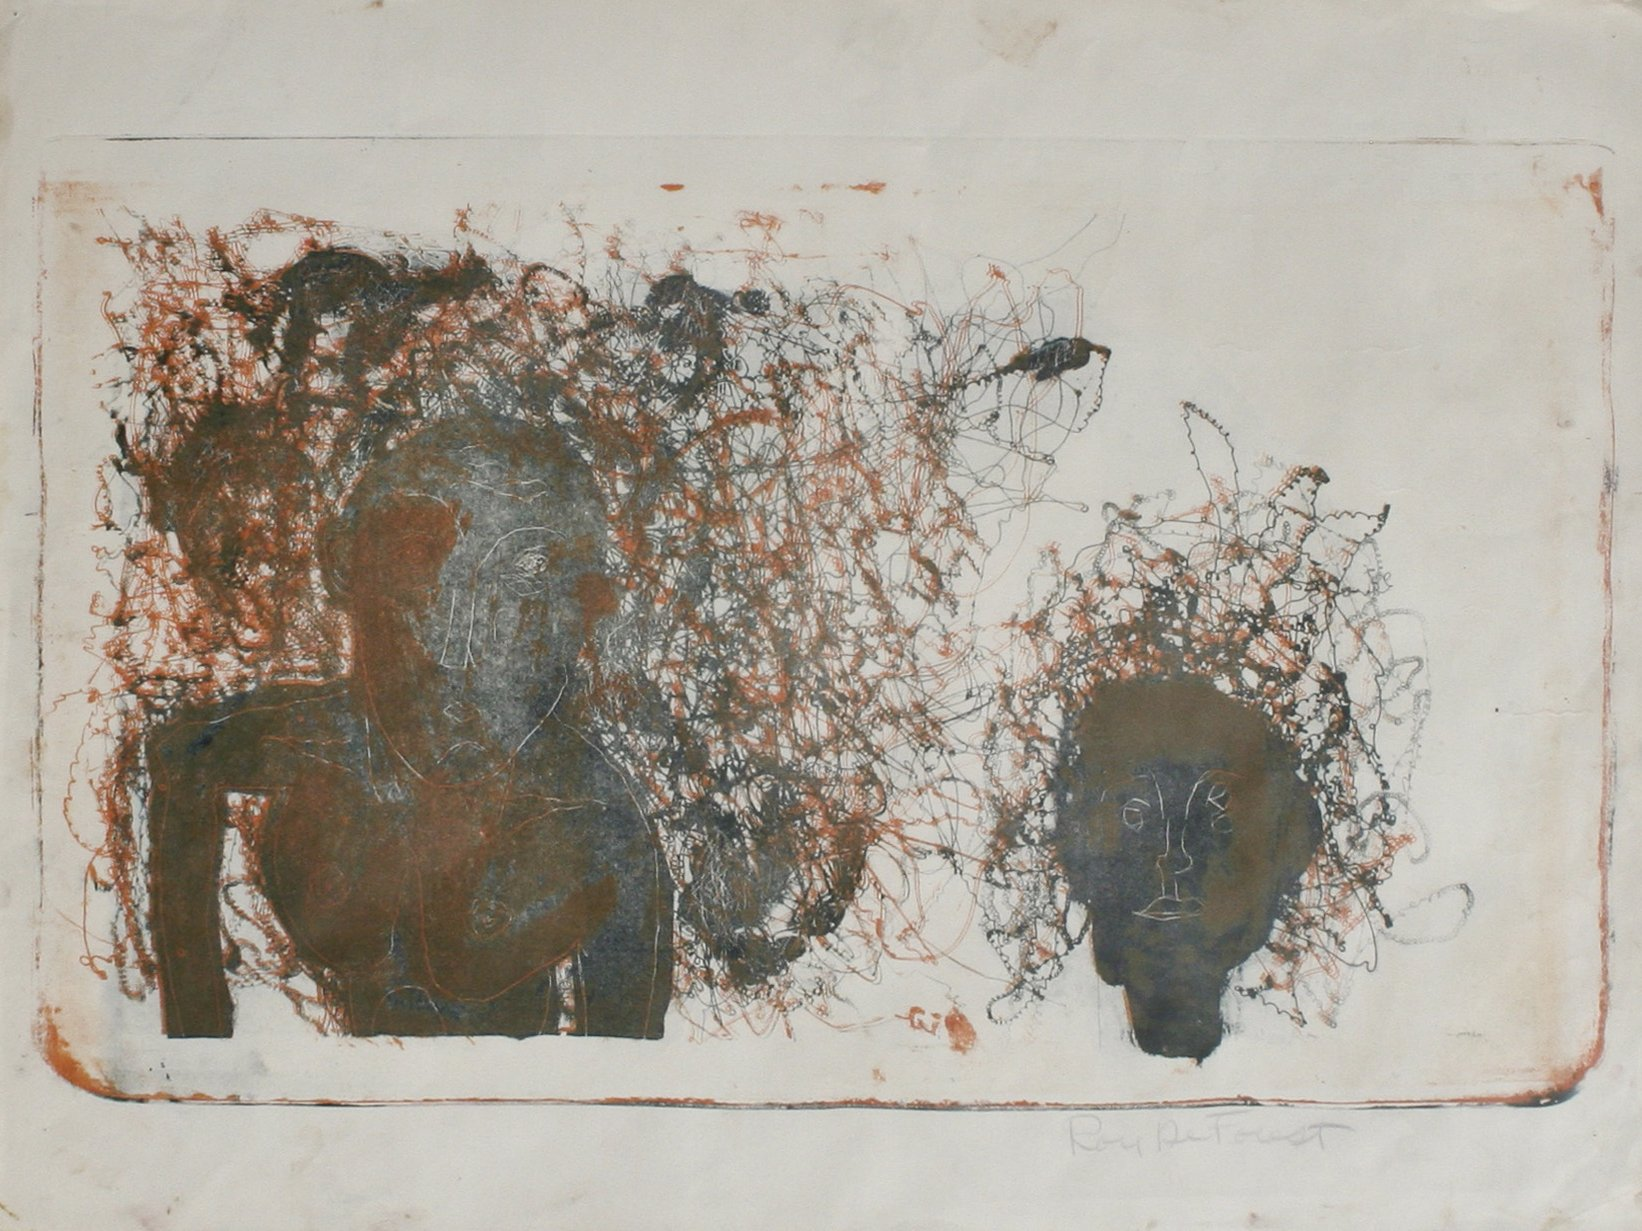 Roy DeForest, Untitled Two Figures